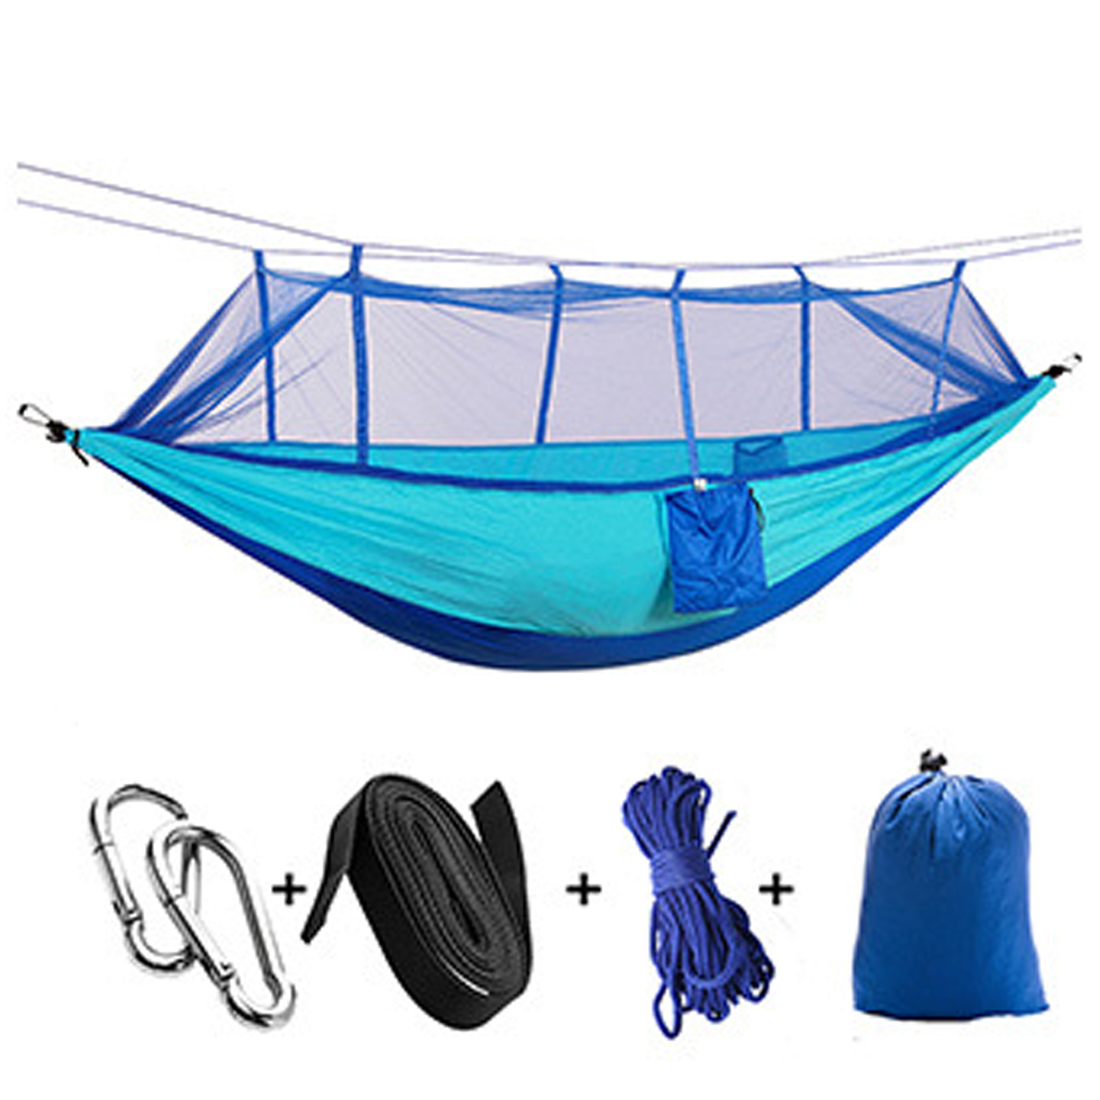 Popular Brand 260x140cm Portable Parachute Fabric Camping Hammock Hanging Bed With Mosquito Net Sleeping Hammock Outdoor Hamaca Warm And Windproof Sports & Entertainment Sleeping Bags